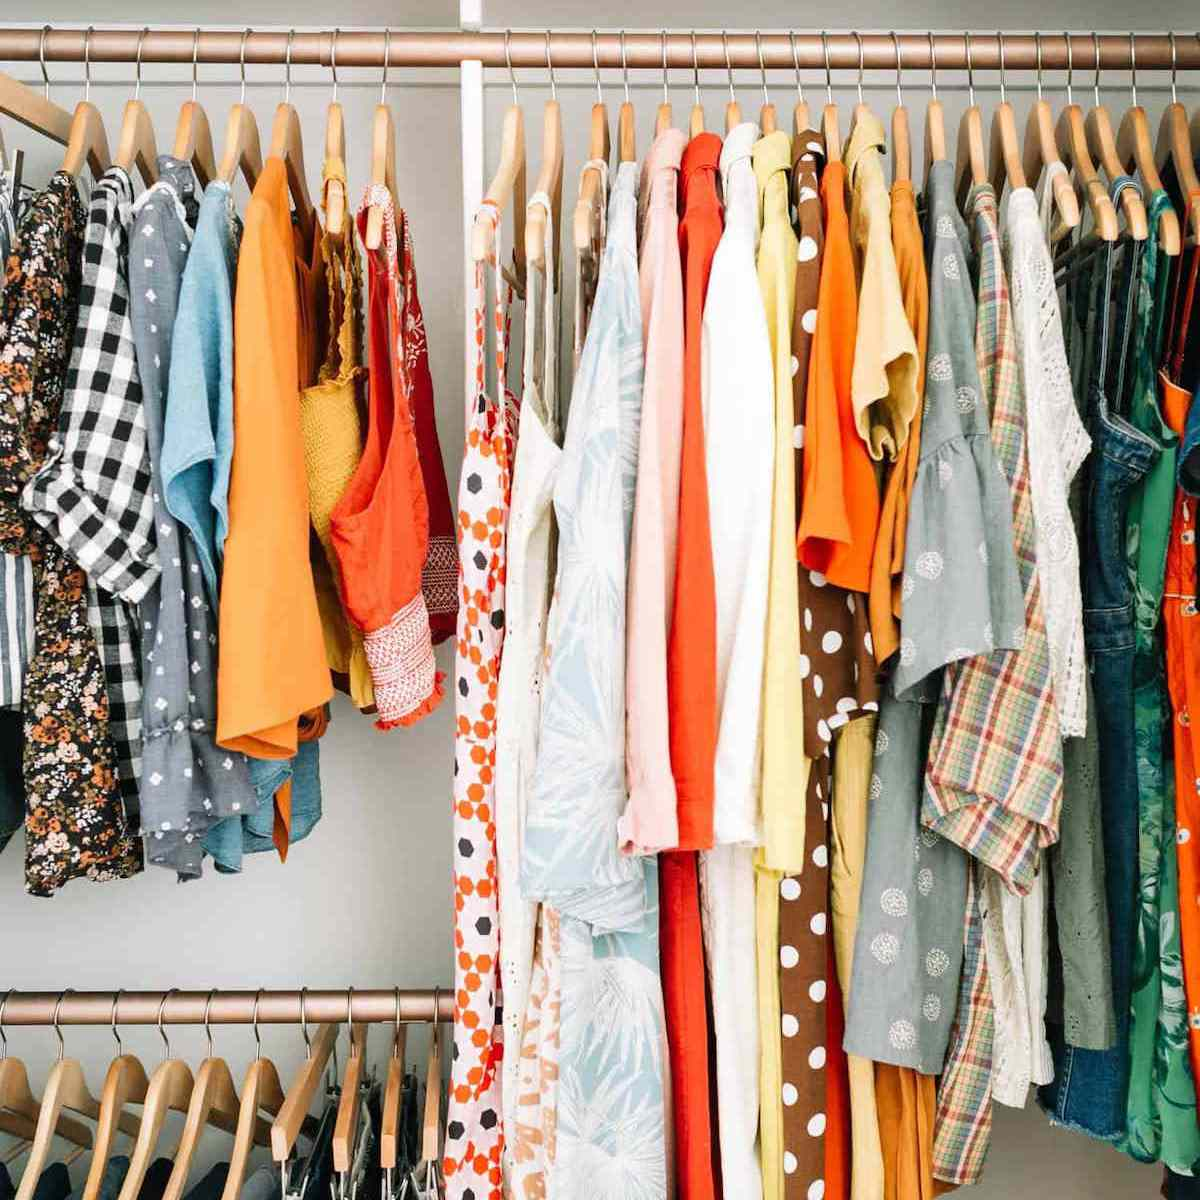 A child's closet with painted clothing rods